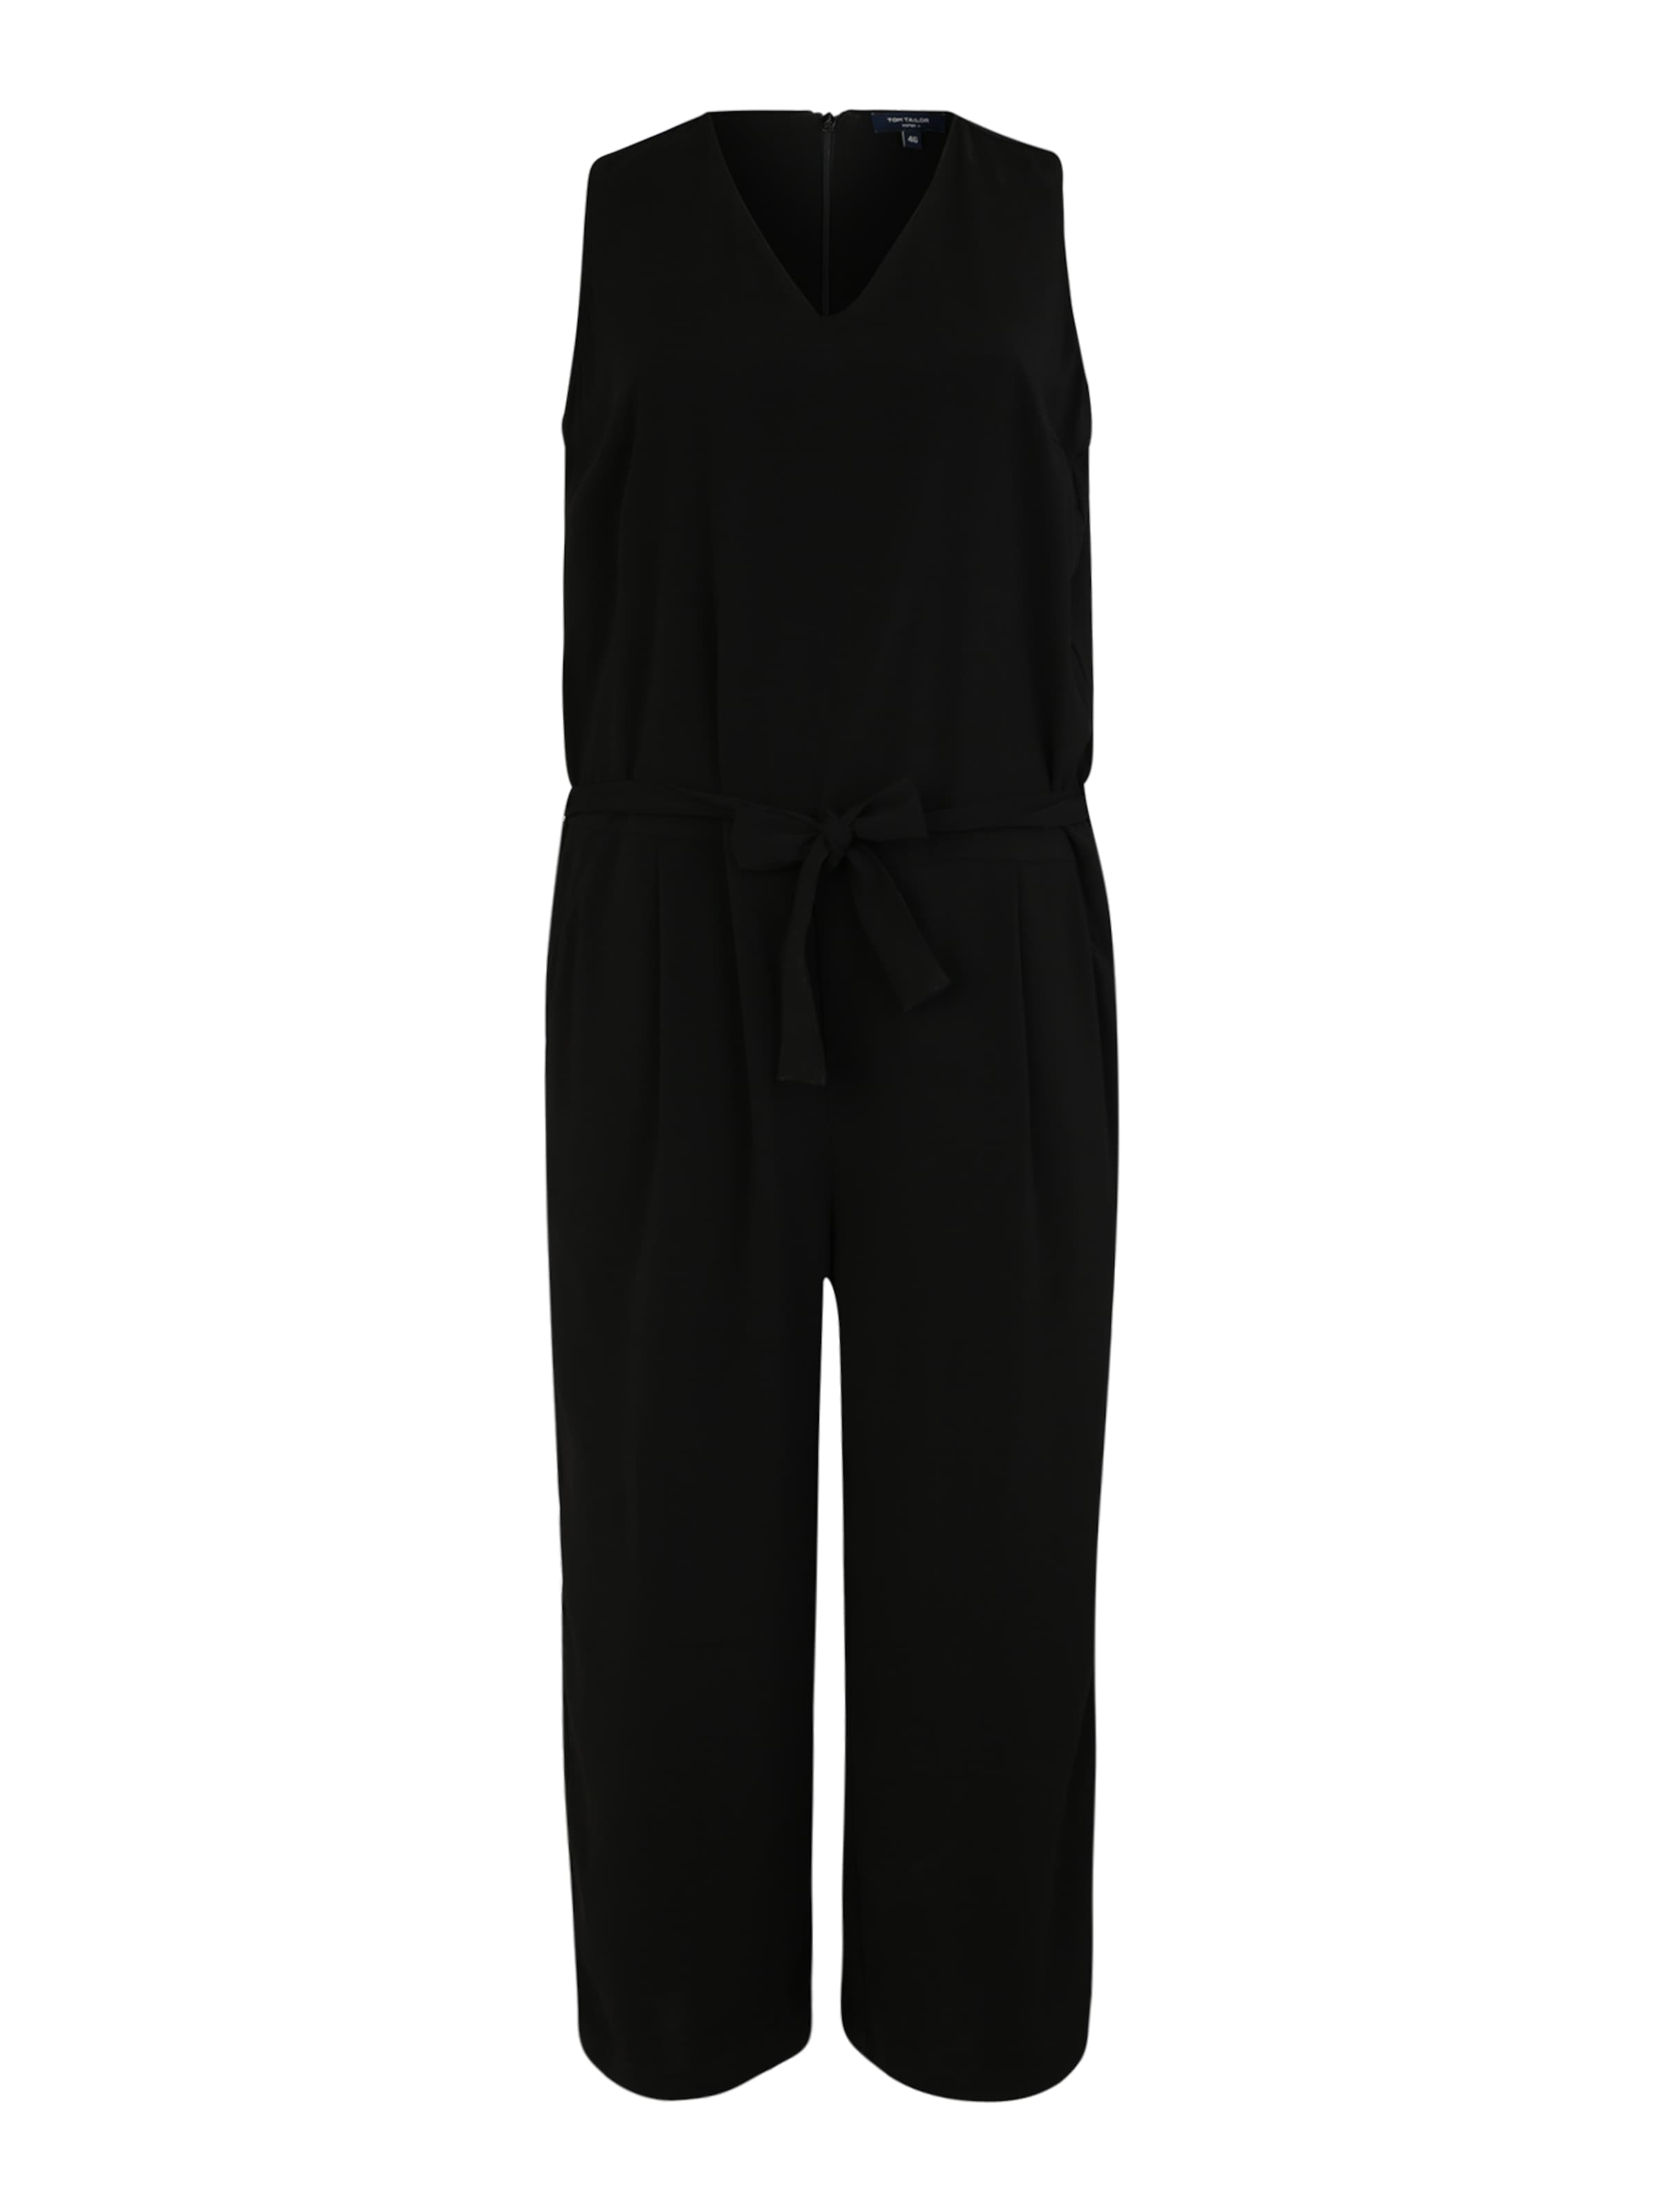 Tailor Tom Schwarz In Tom Tom In WomenJumpsuit Schwarz WomenJumpsuit Tailor 354jqLRA